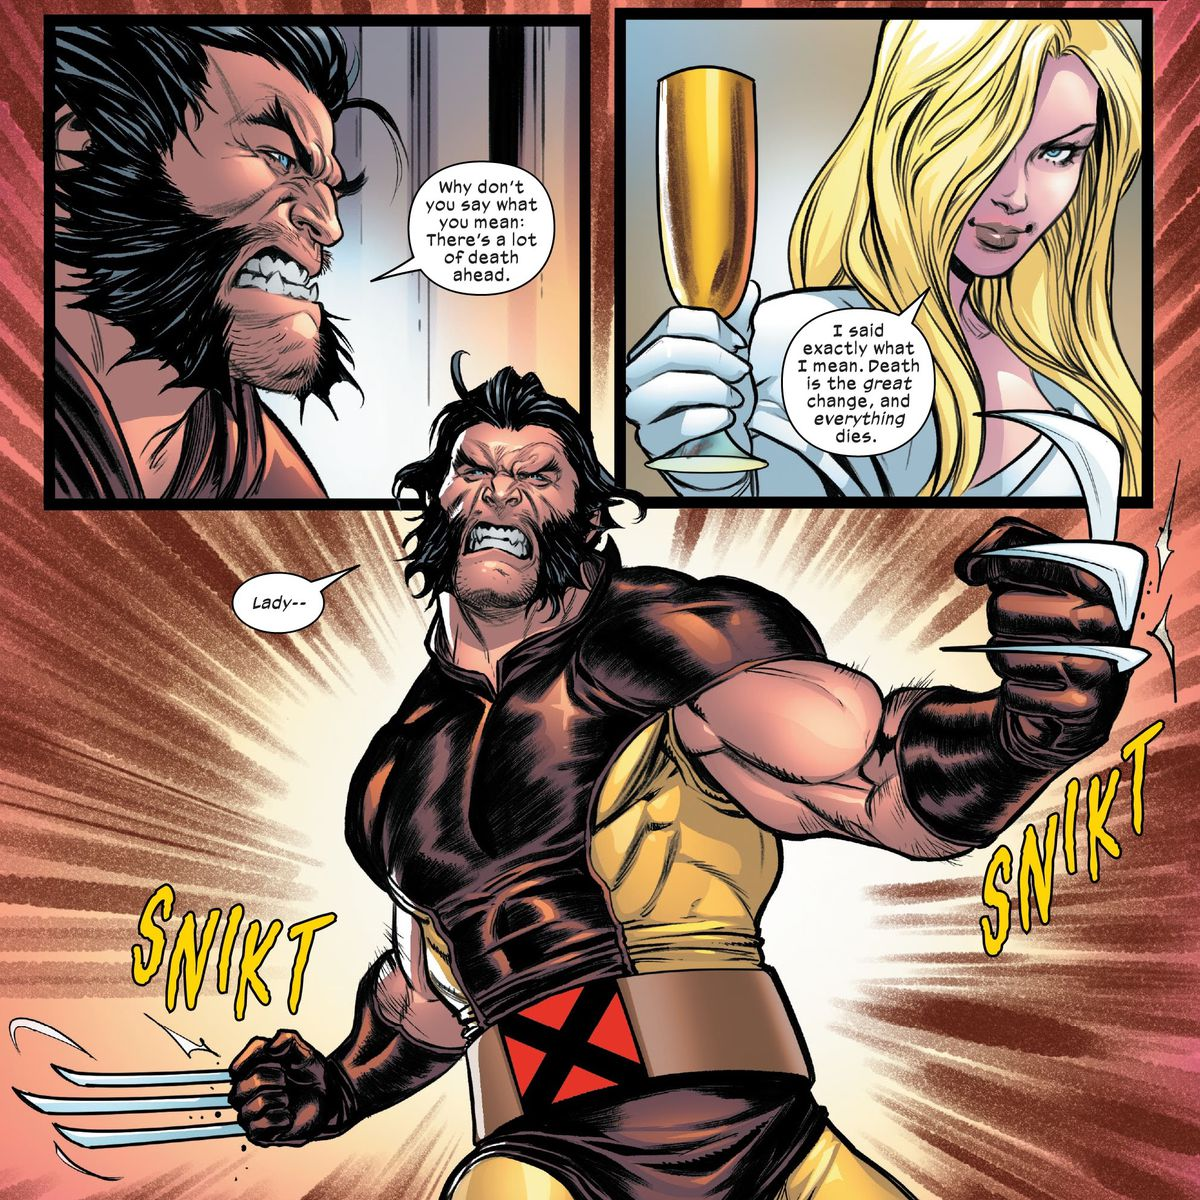 """Death is the great change, and everything dies,"" says Lady Saturnyne in Marauders #14, Marvel Comics (2020). Wolverine pops his claws and goes on the attack."